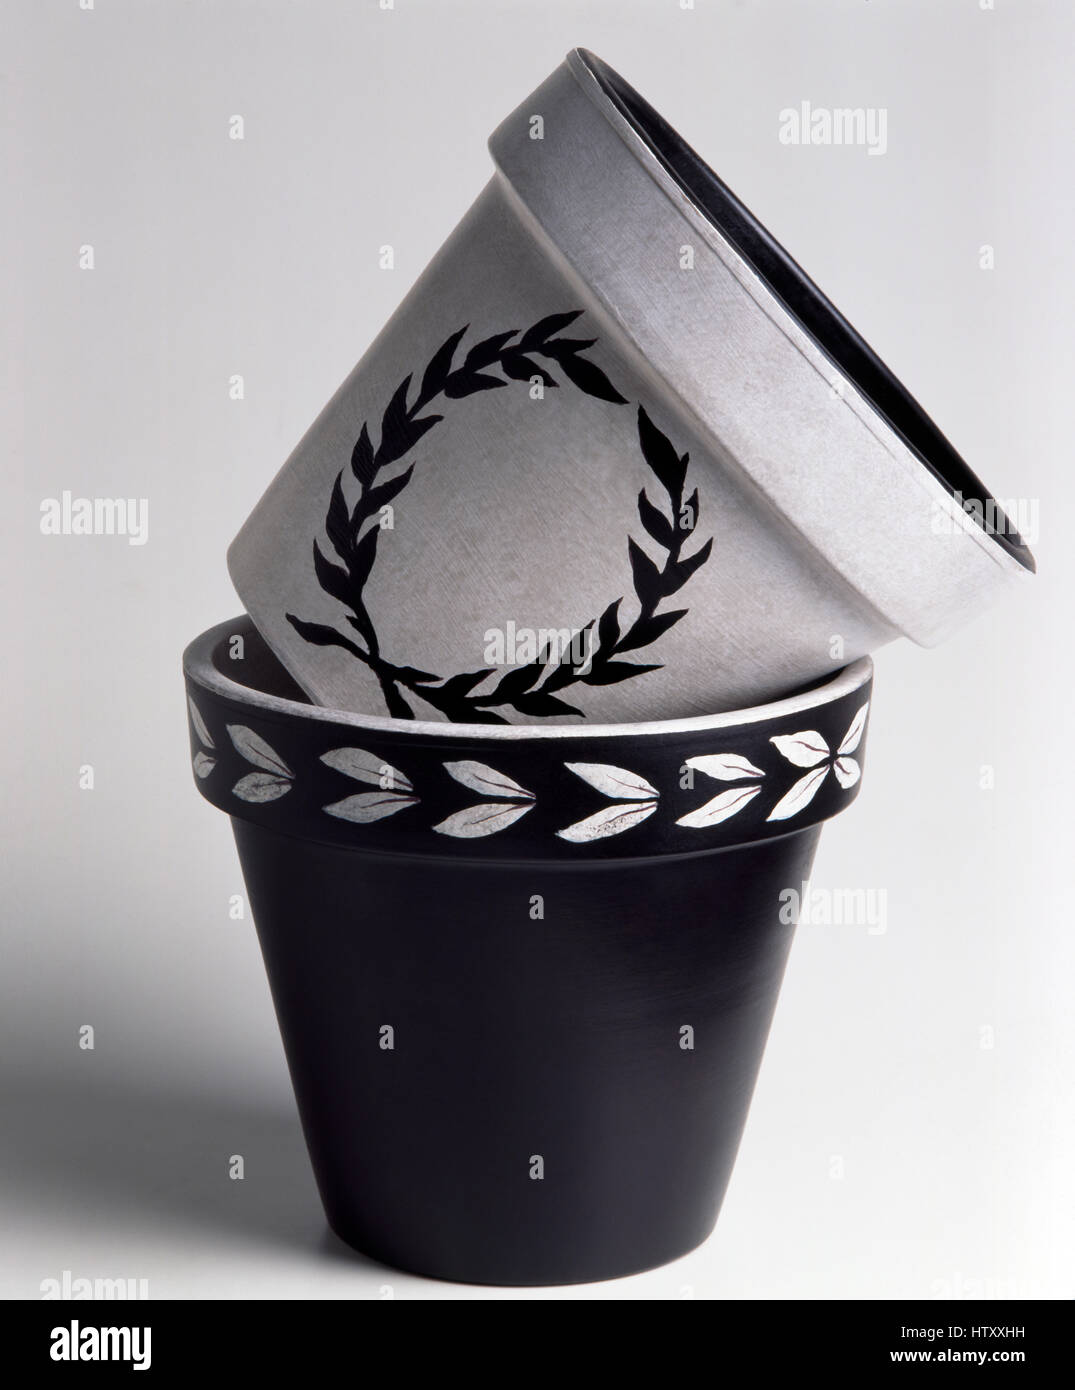 Close Up Of Black And White Painted Flower Pots With A Stenciled